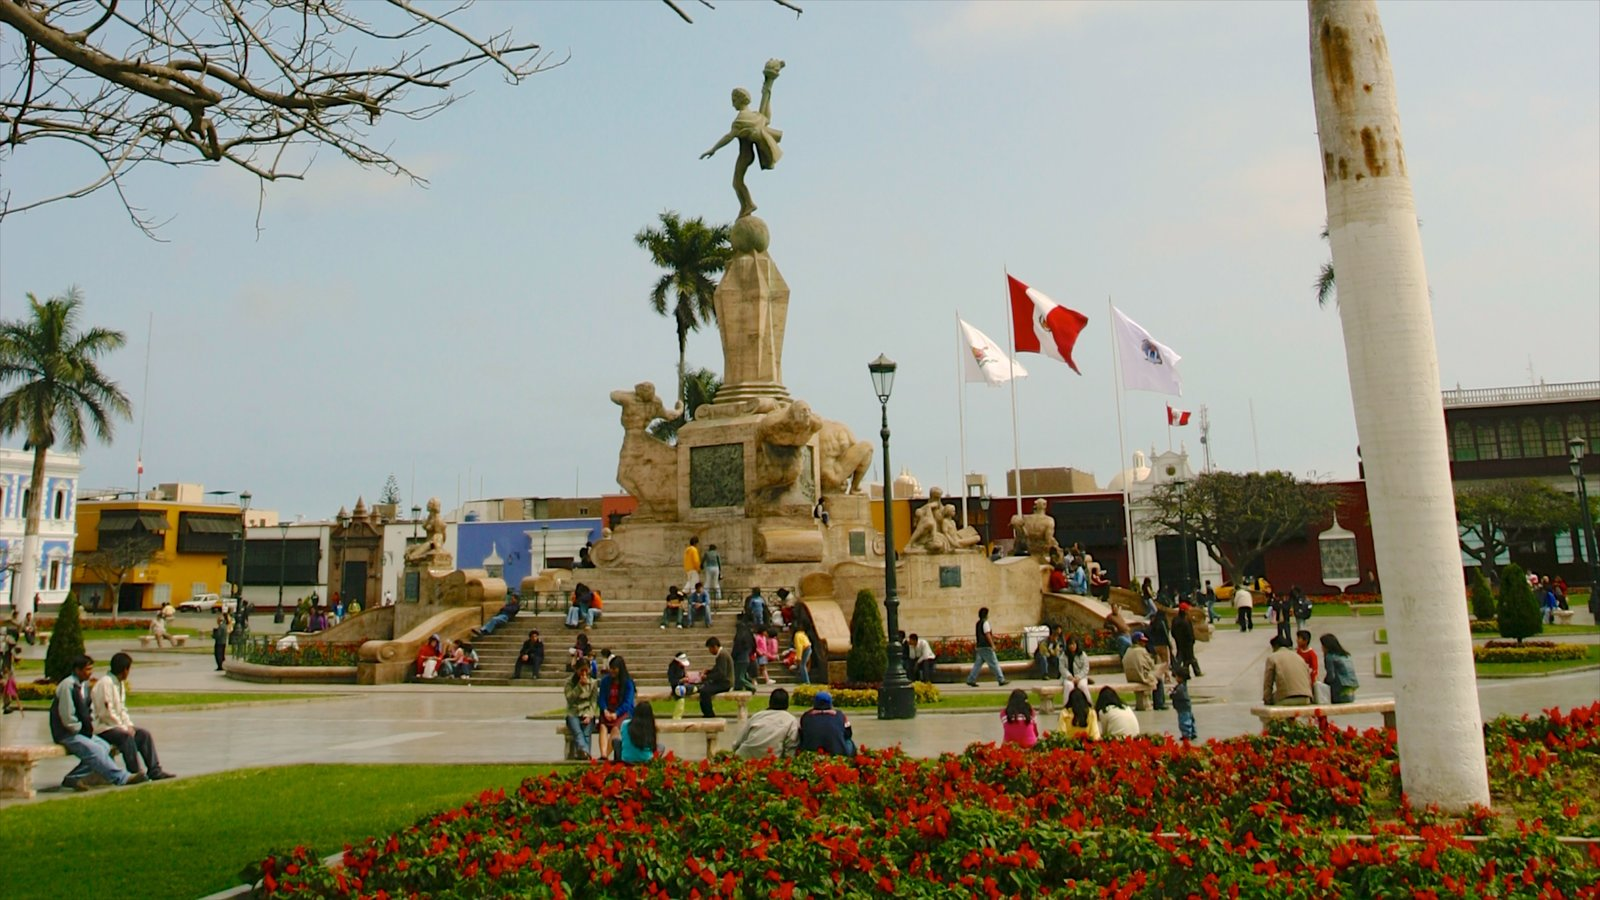 Trujillo showing a statue or sculpture, a square or plaza and a city